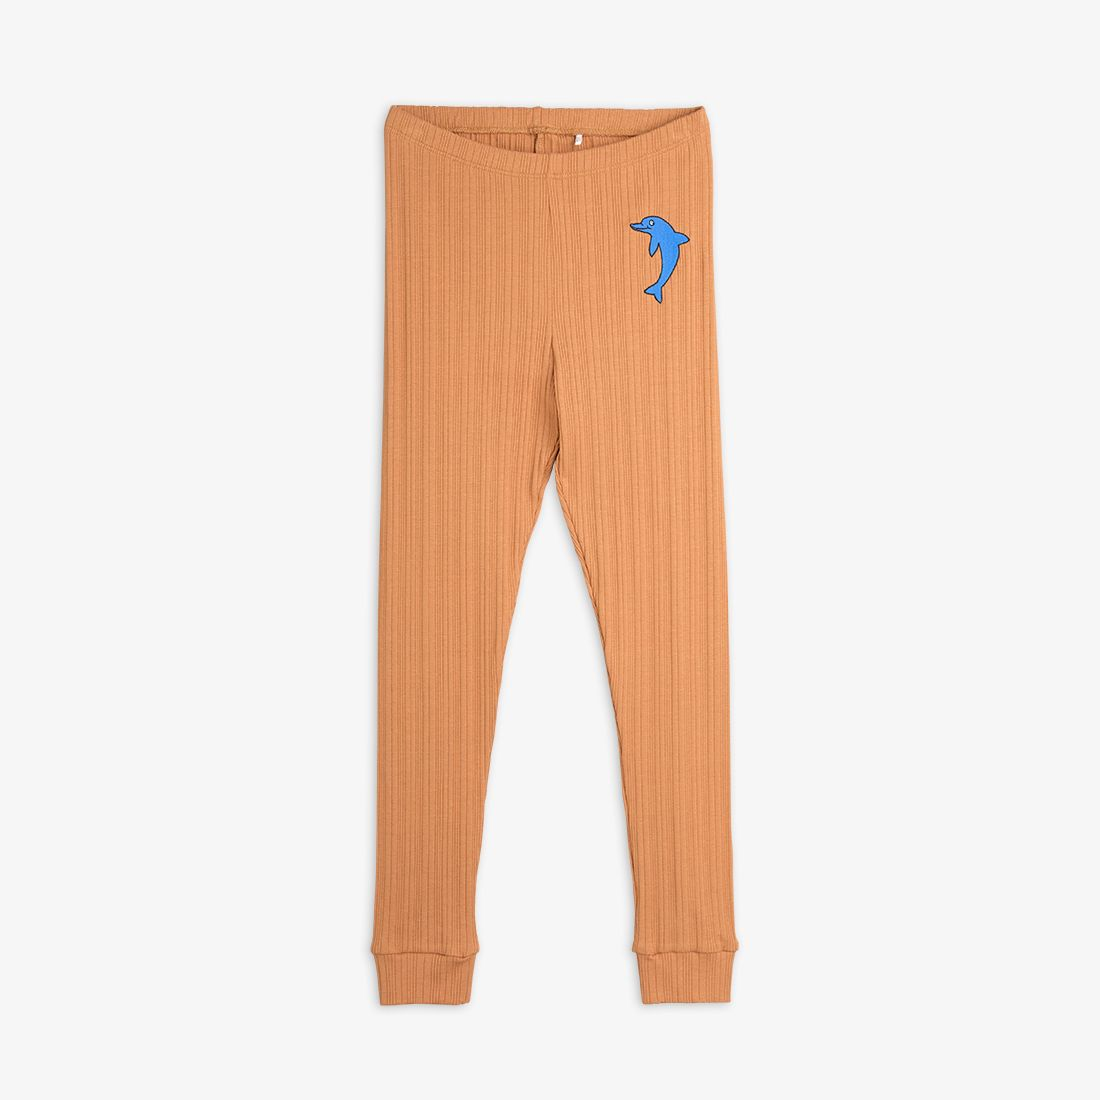 Dolphin Embroidered Leggings